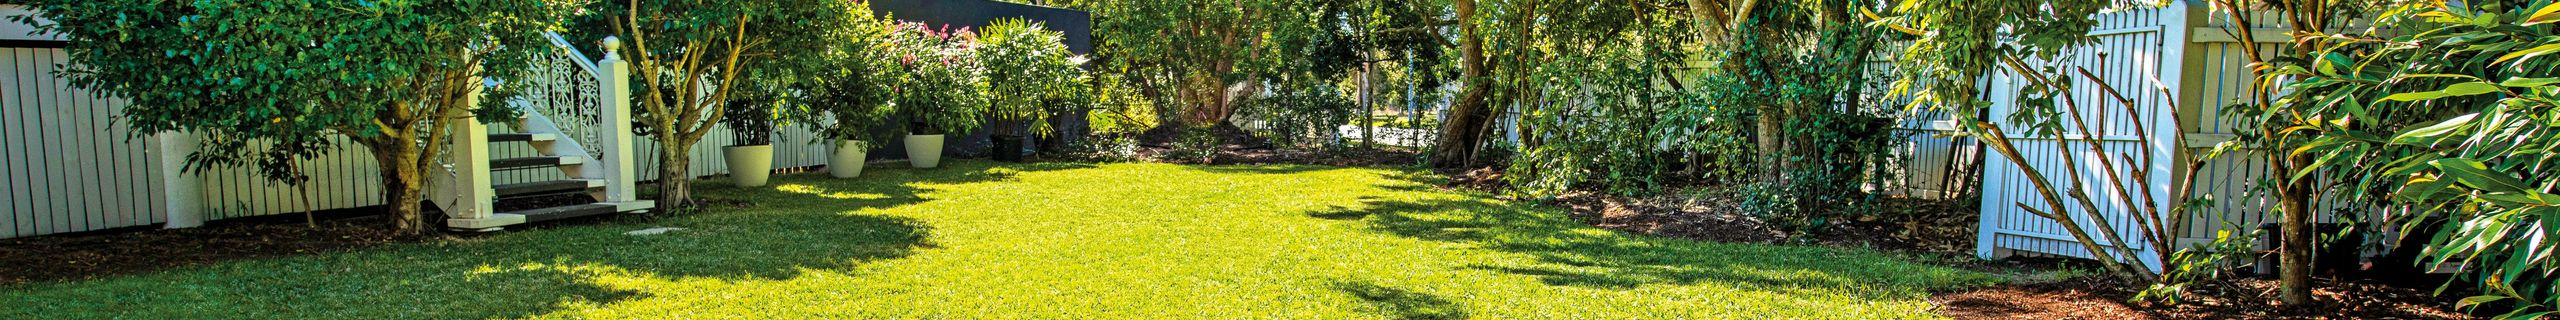 Lawn and trees in a backyard.